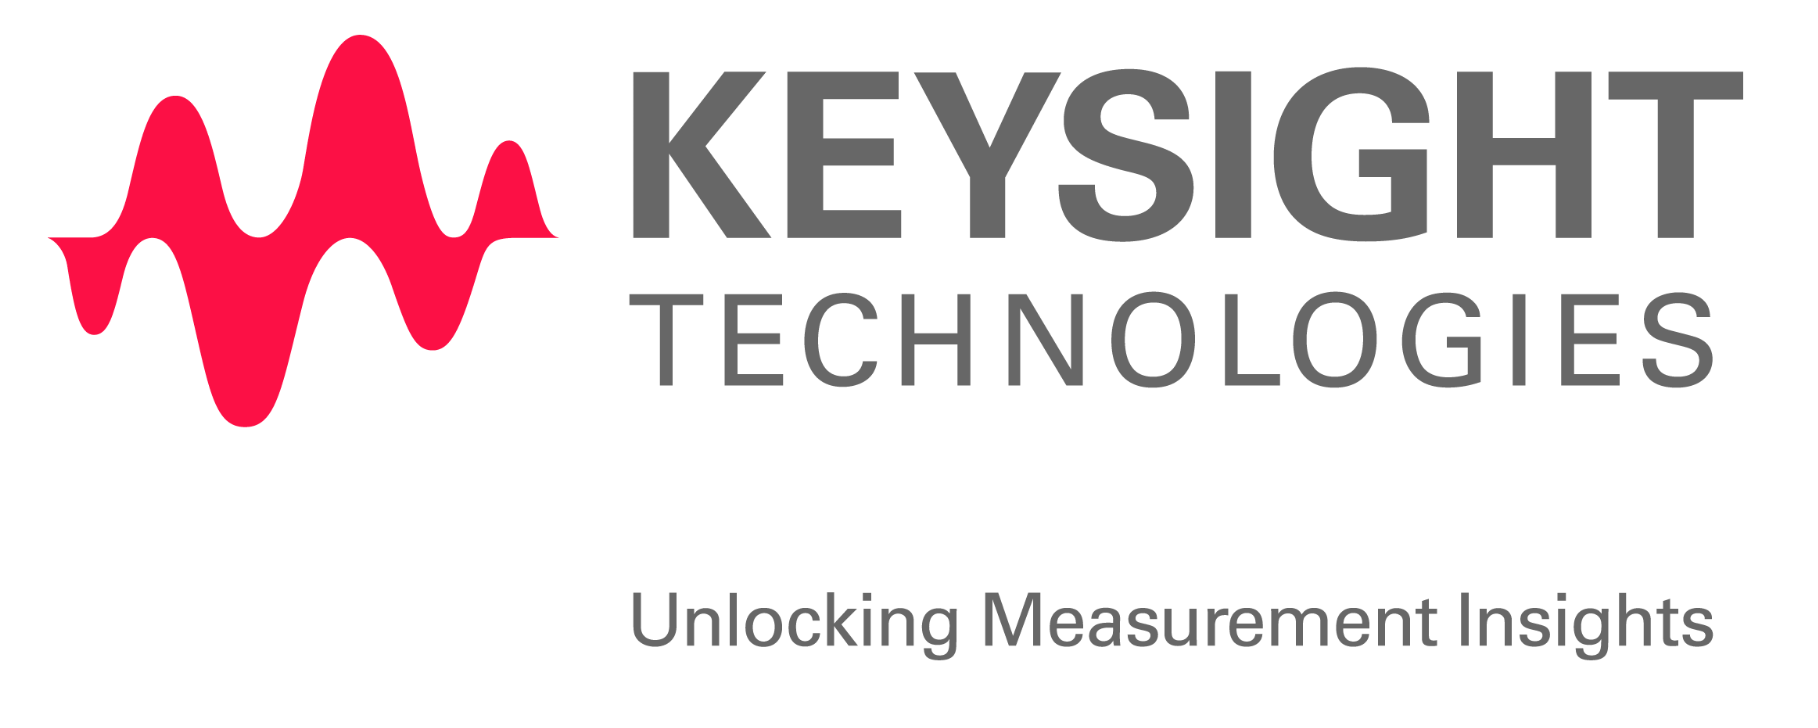 [Keysight Technologies logo]